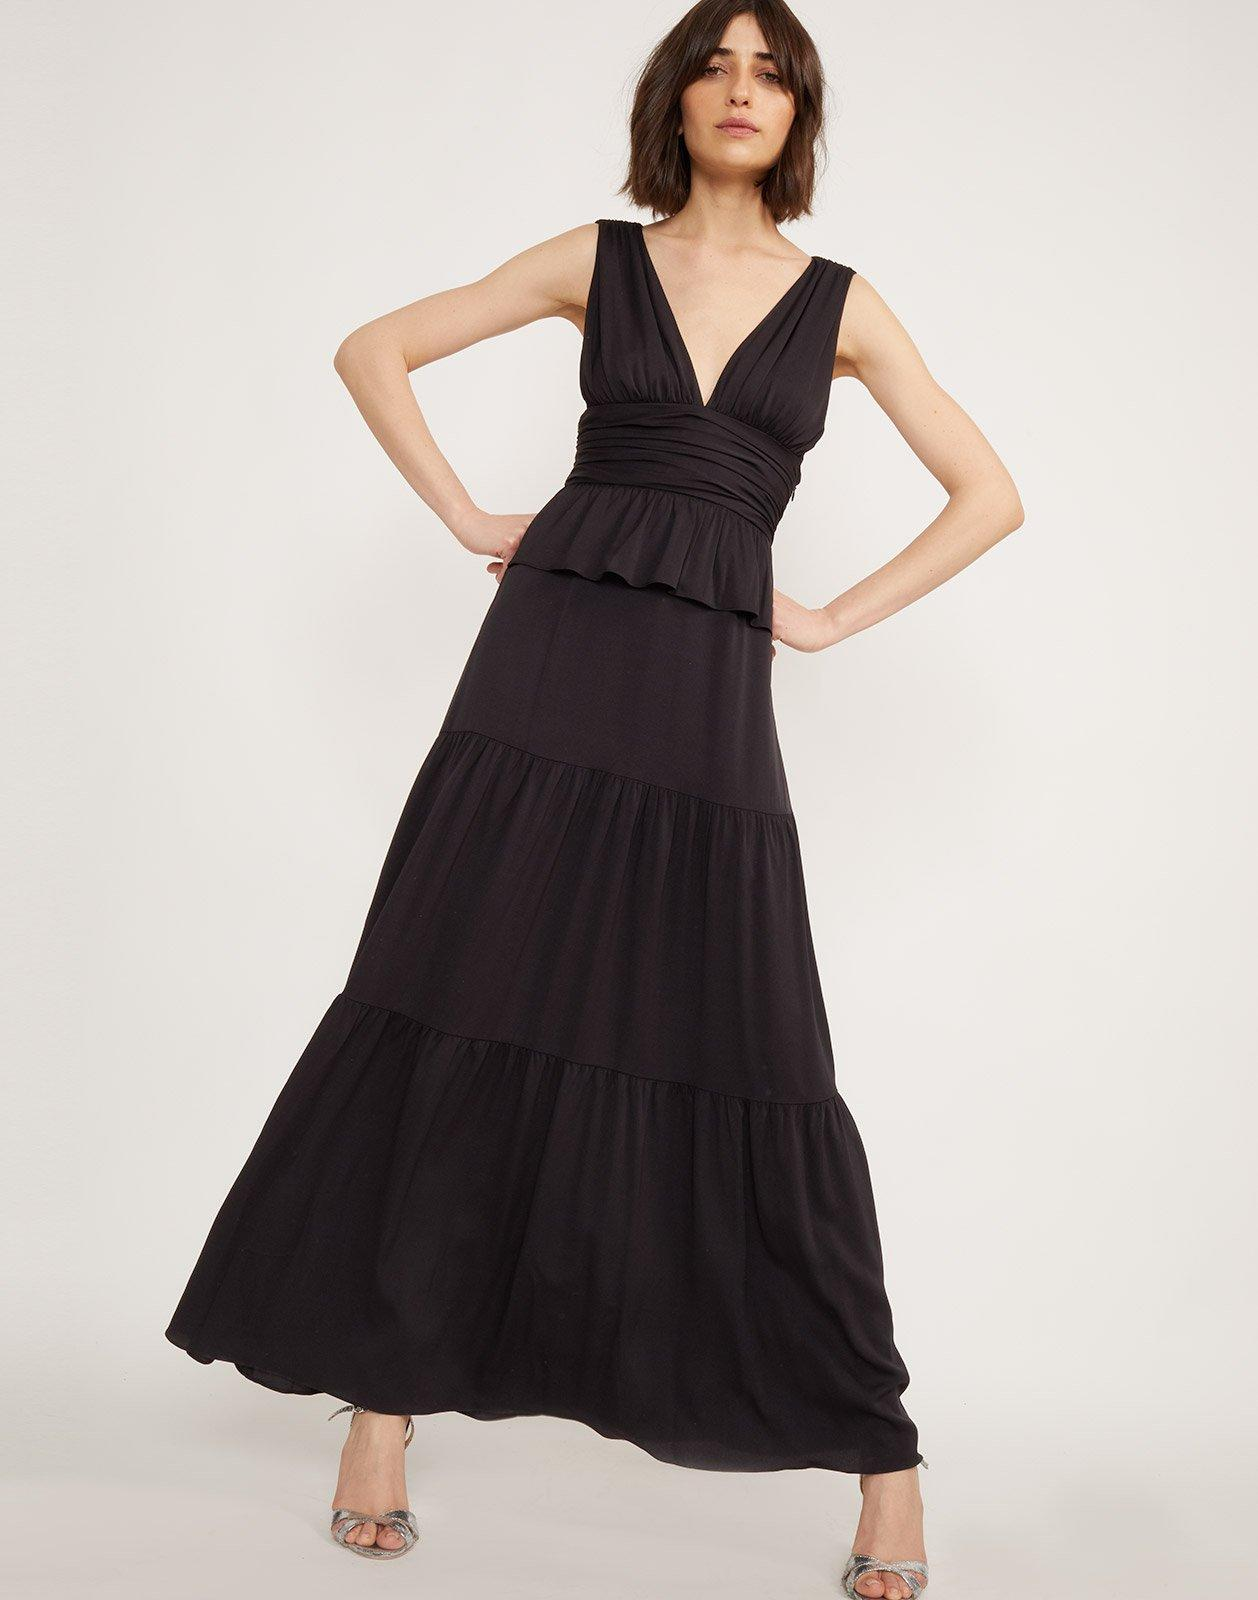 374200c47f Cynthia Rowley. Women s Black Zadie Tiered Maxi Dress.  474 From Orchard  Mile